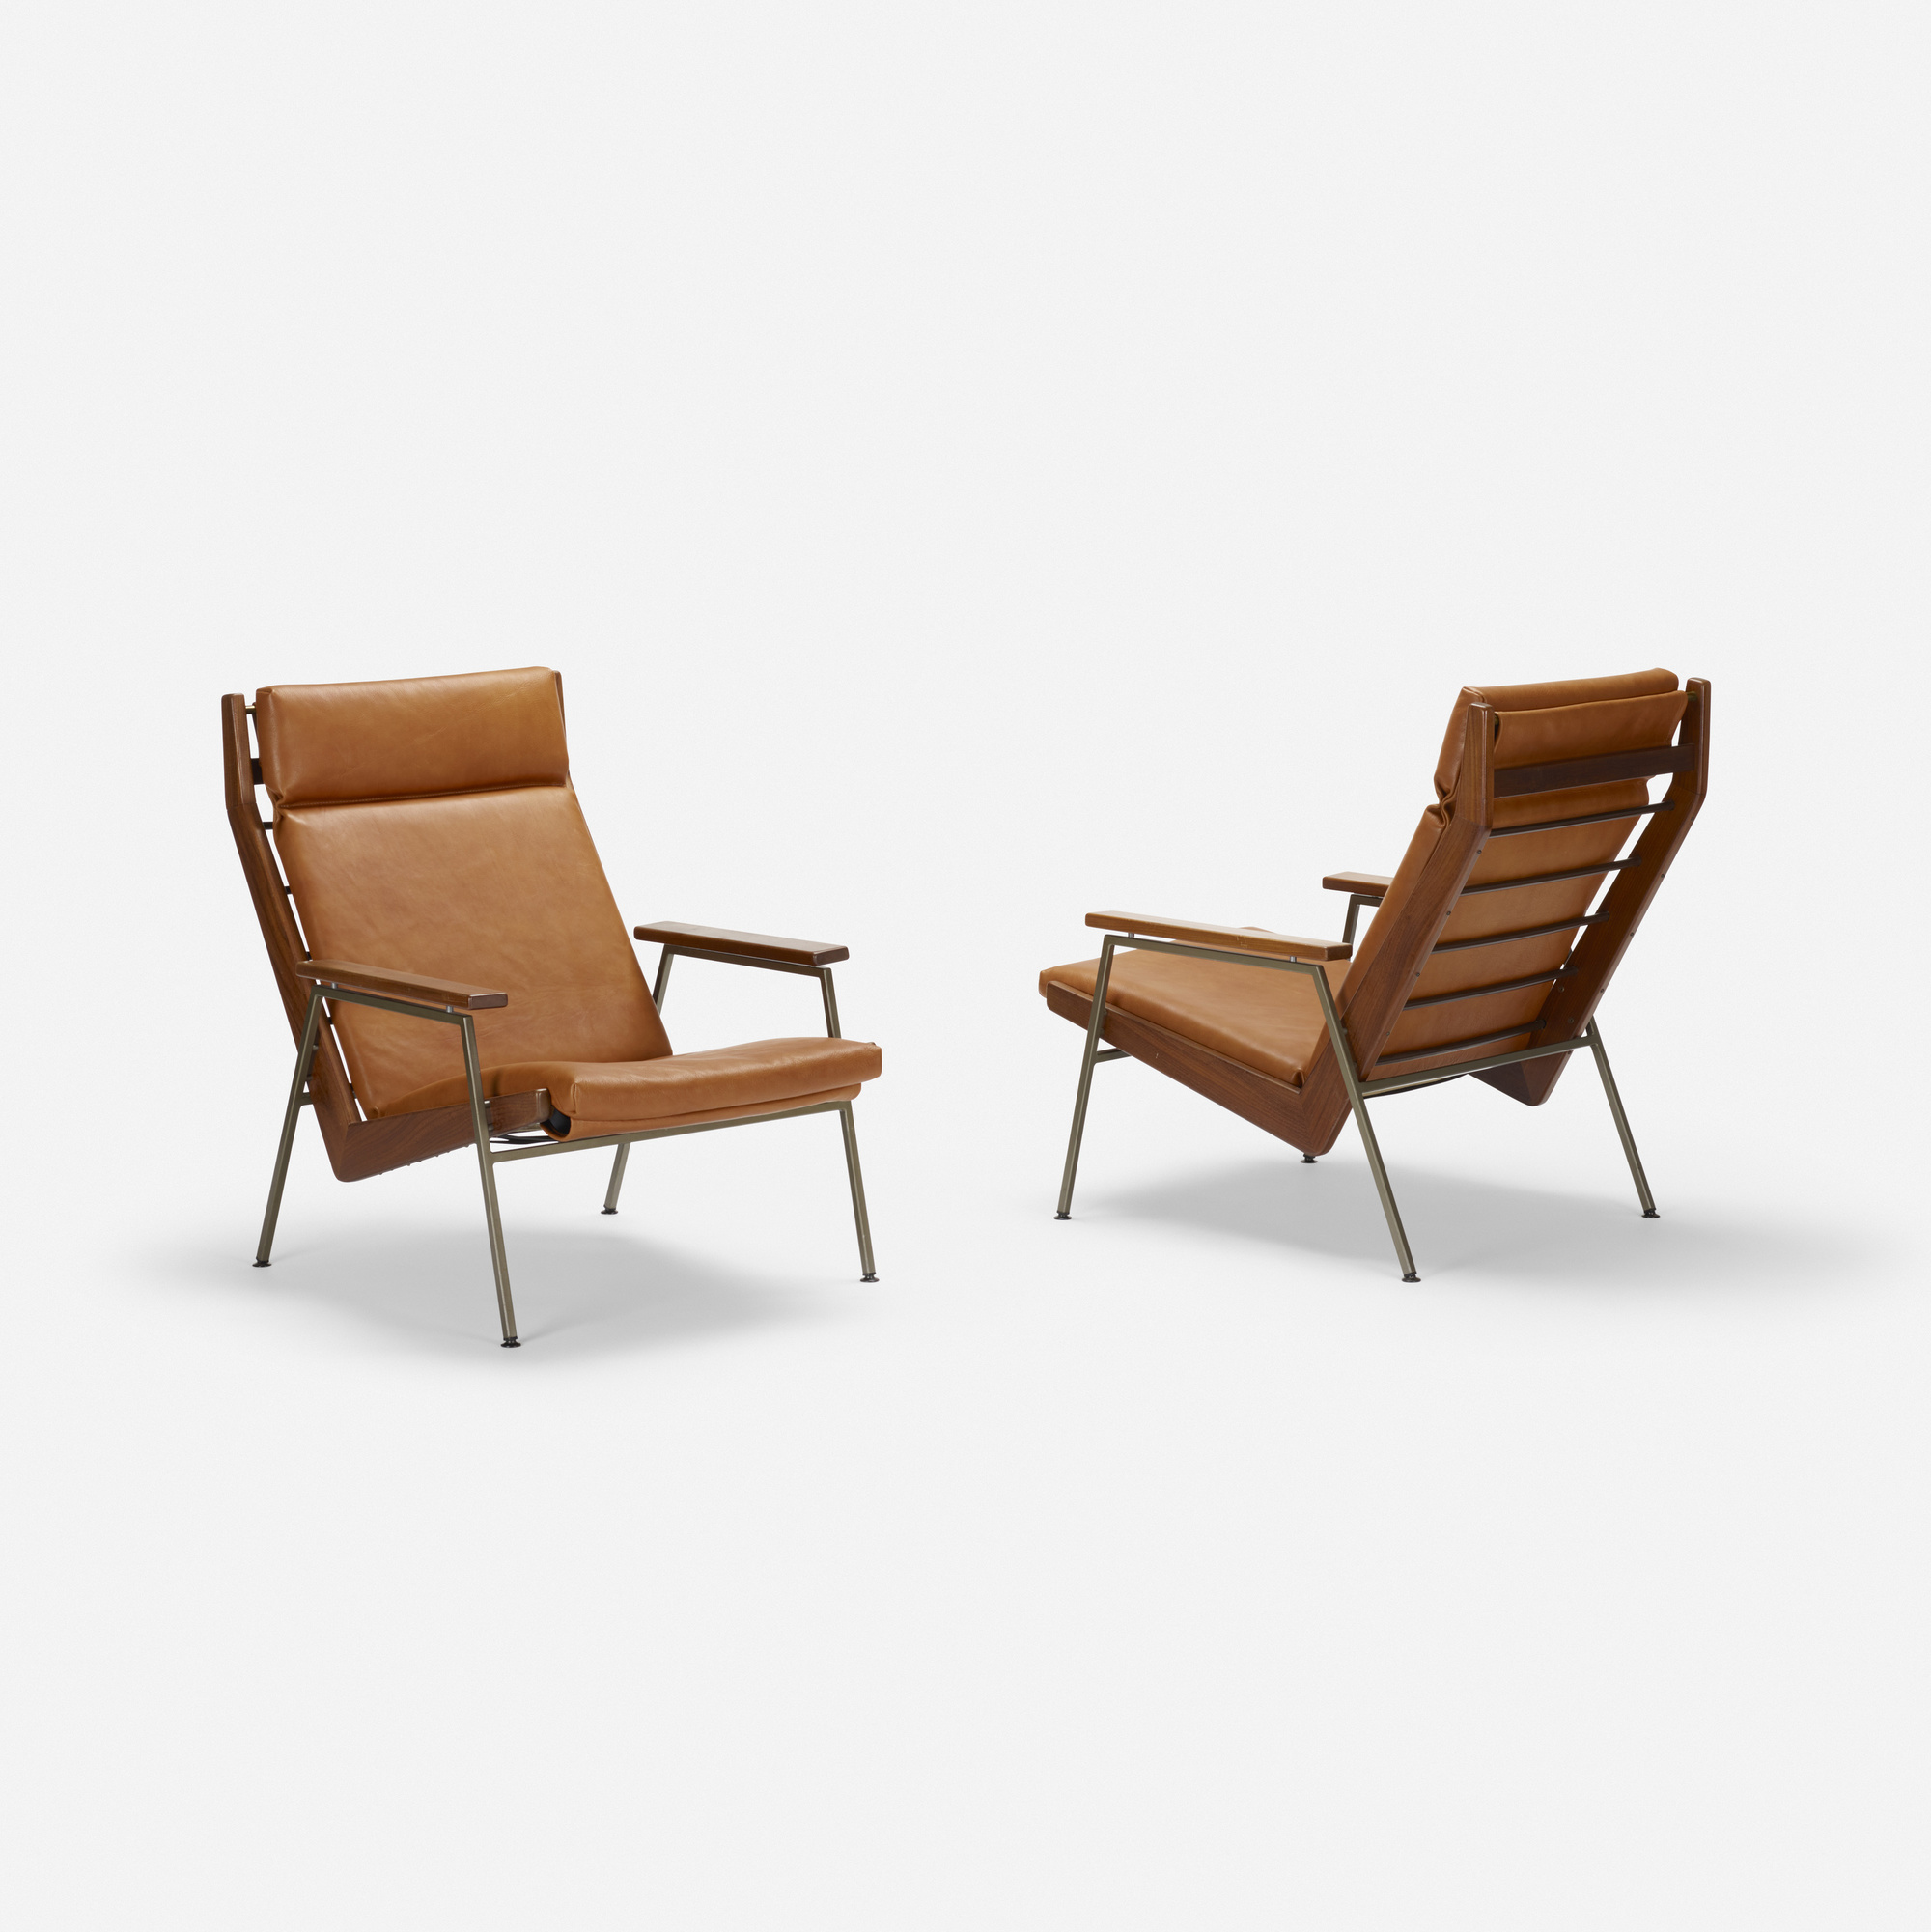 Stupendous 315 Rob Parry Lotus Lounge Chairs Pair Art Design 19 Pdpeps Interior Chair Design Pdpepsorg